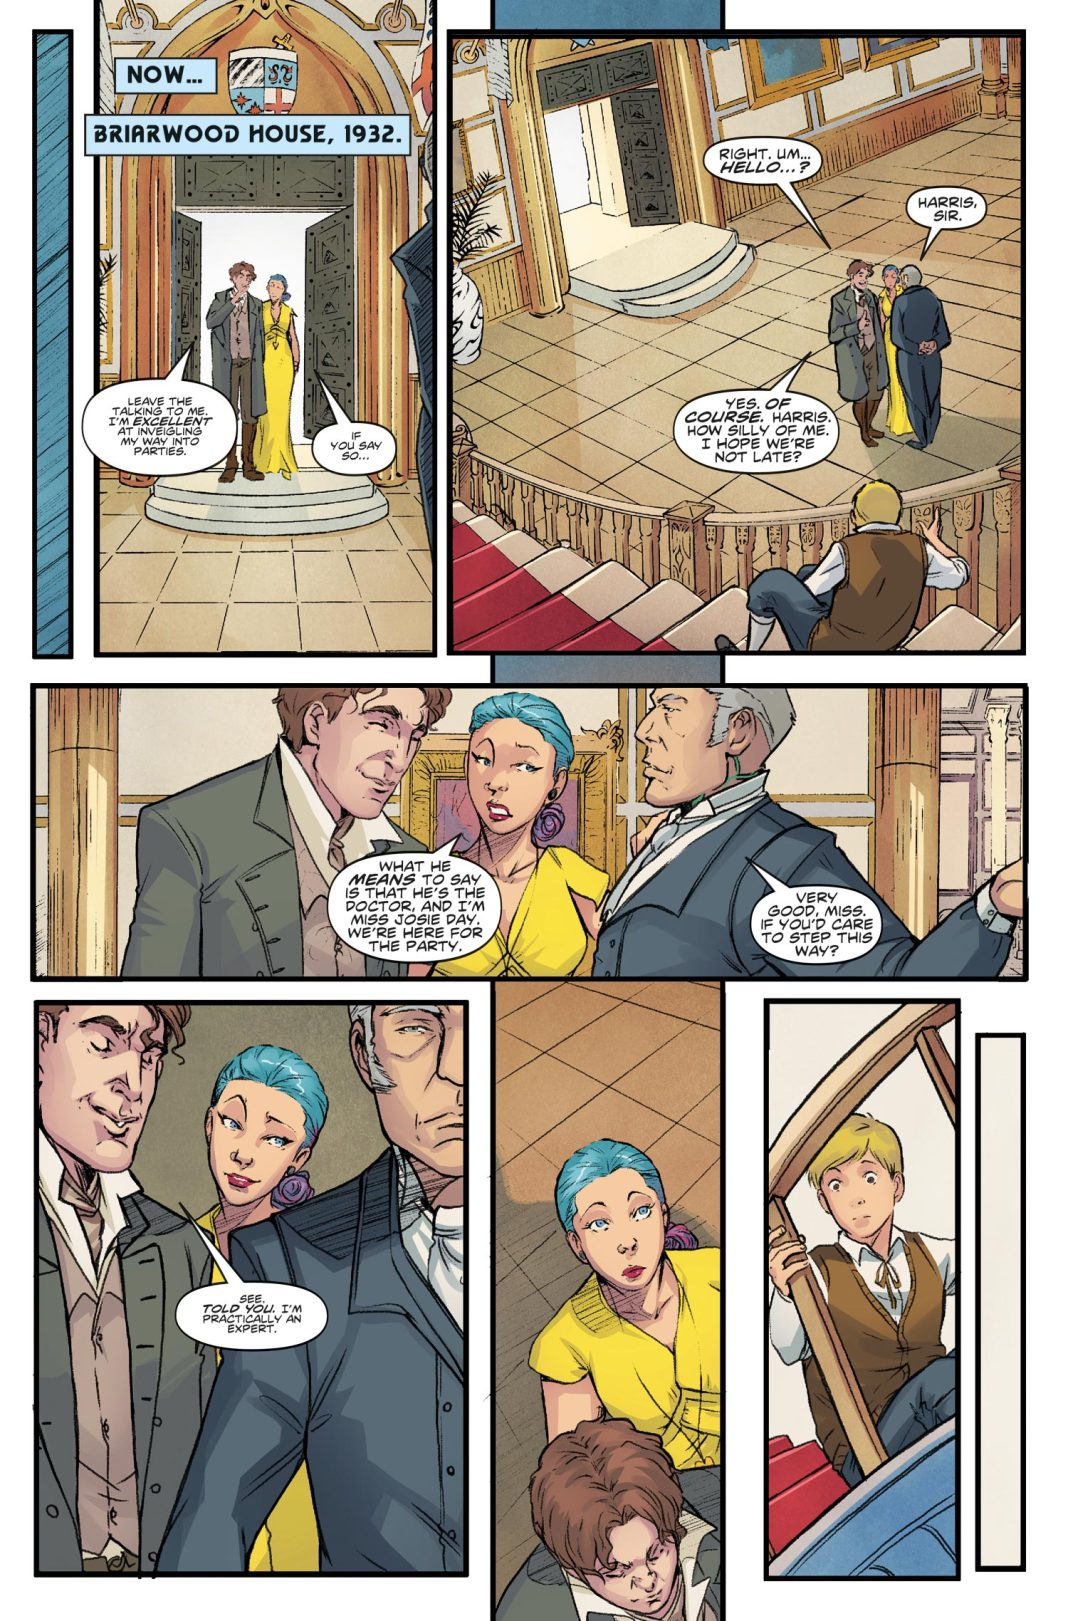 Doctor Who: The Eighth Doctor #4 - Preview 2 (c) Titan Comics